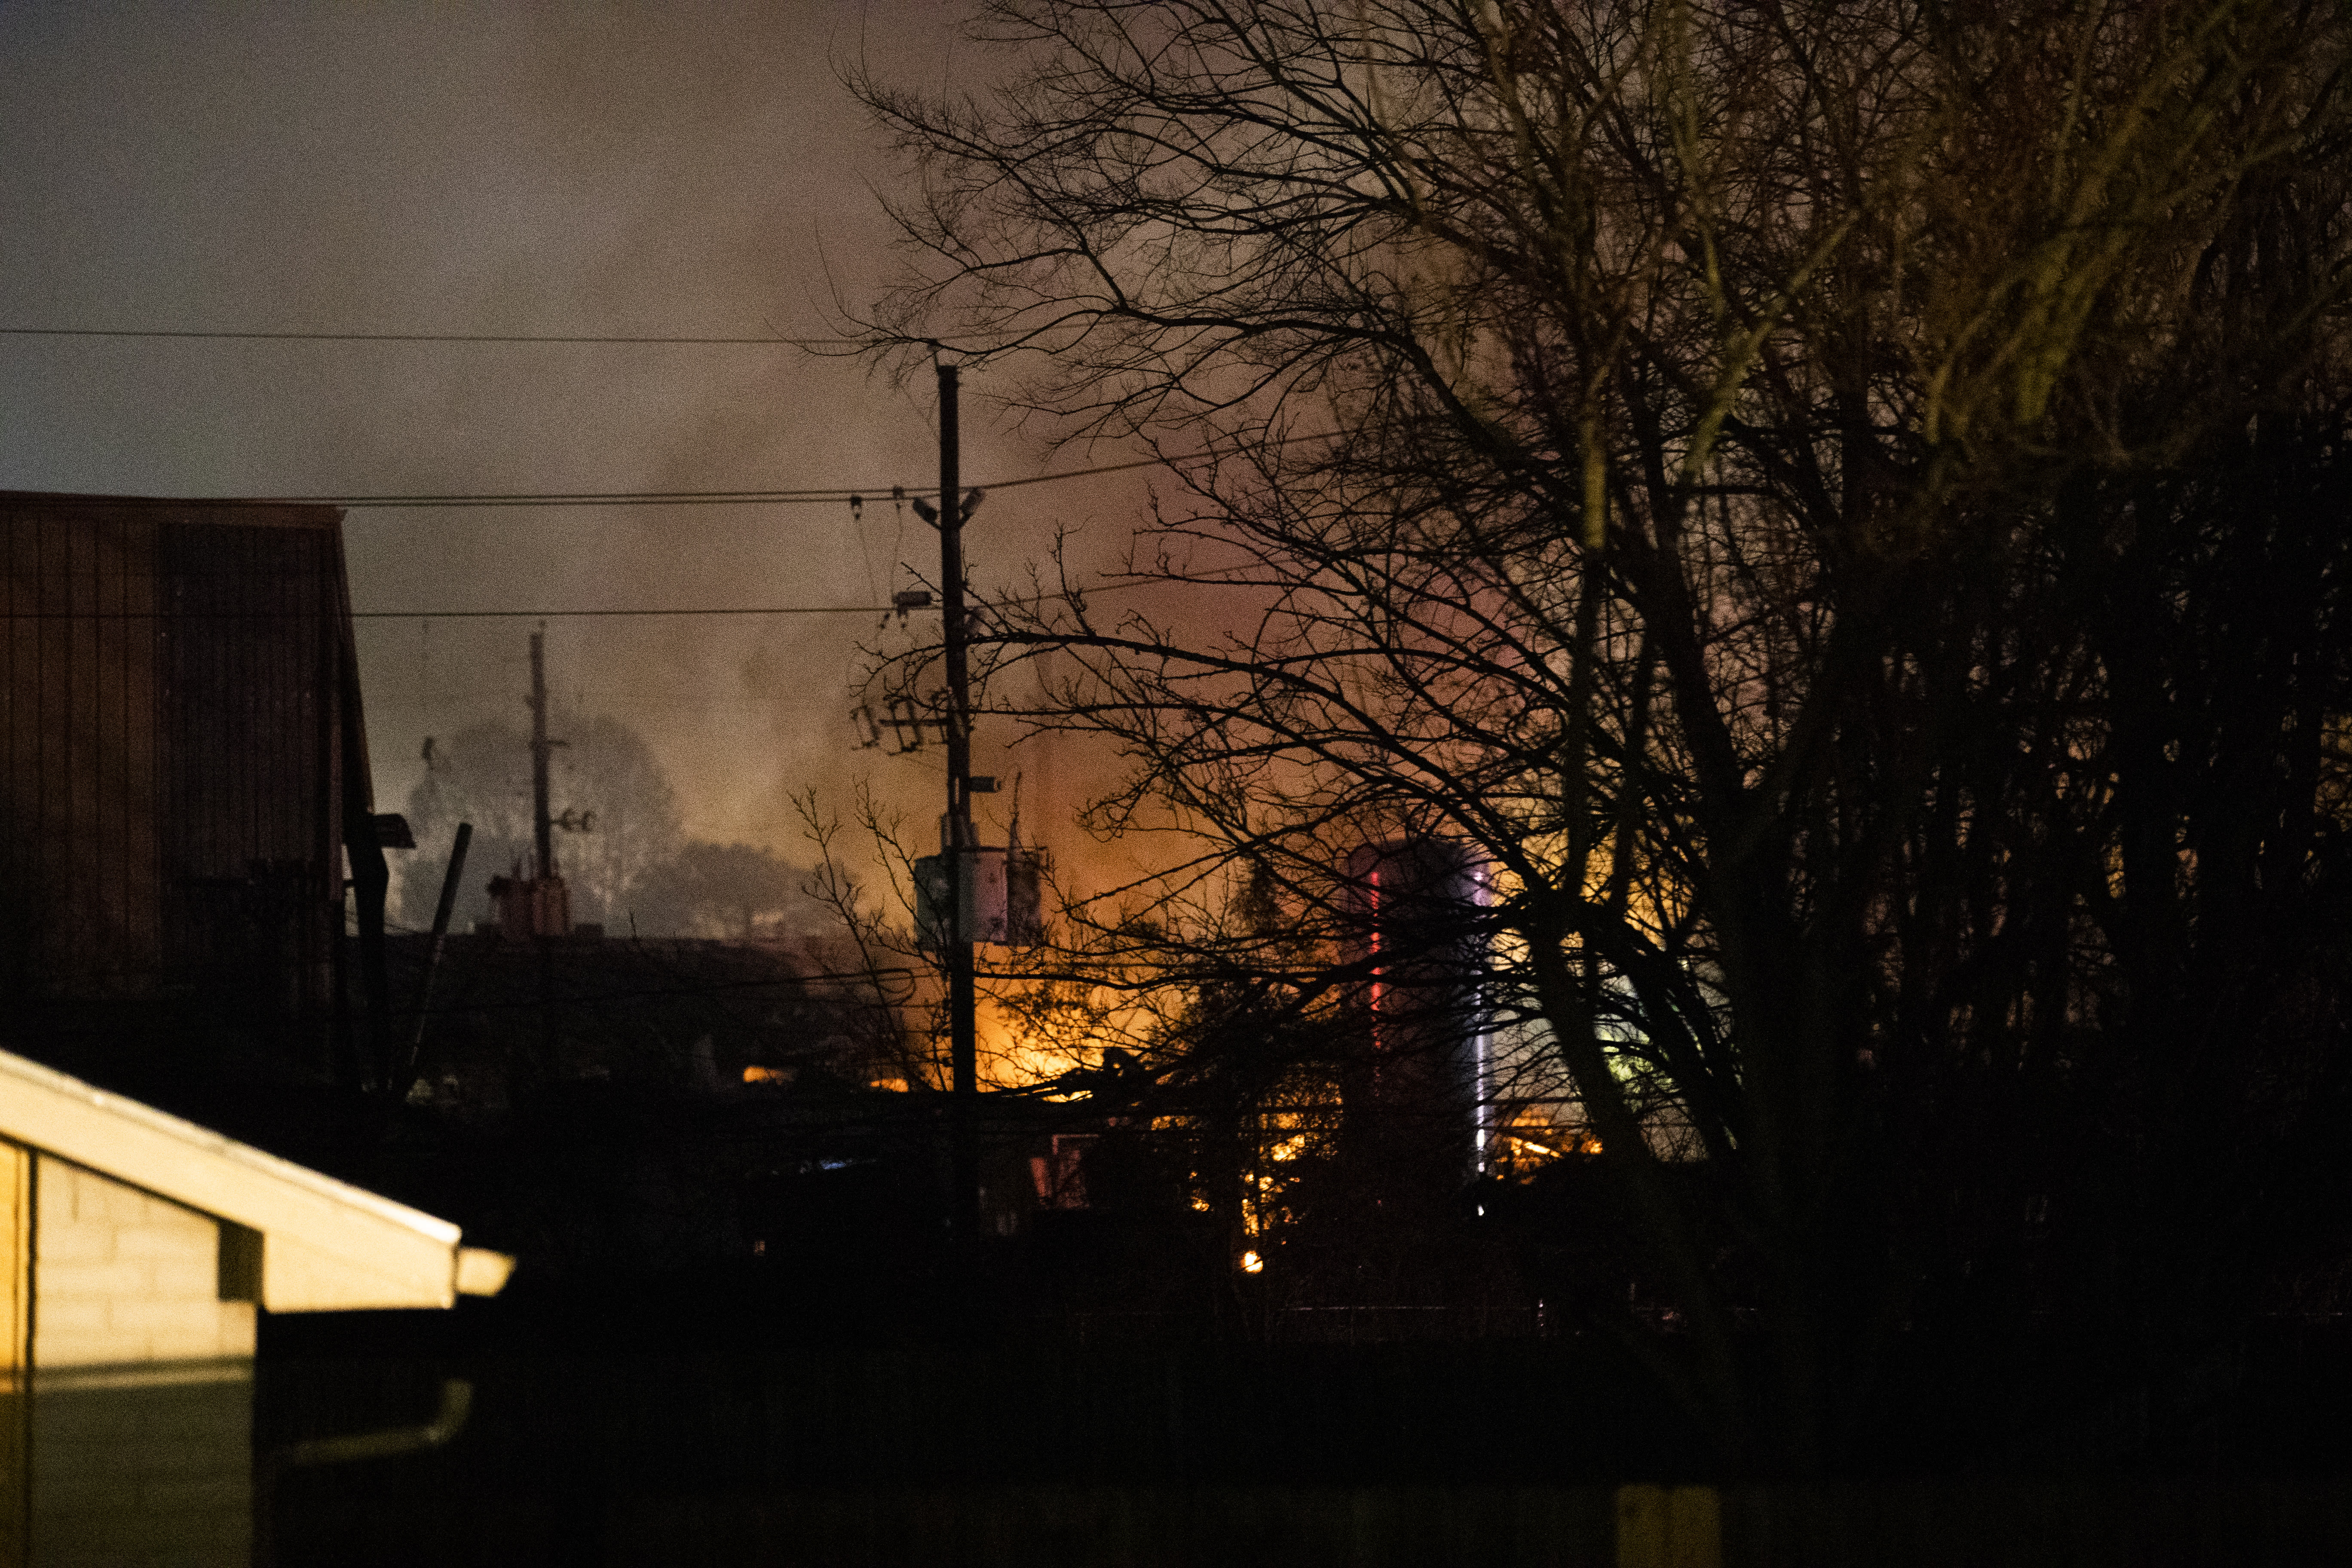 Flames fill the sky after a massive explosion rocks west Houston Friday, Jan. 24, 2020, in Houston. A massive explosion early Friday leveled a warehouse in Houston and damaged nearby buildings and homes, rousing frightened people from their sleep miles away. (Marie D. De Jesús/Houston Chronicle via AP)